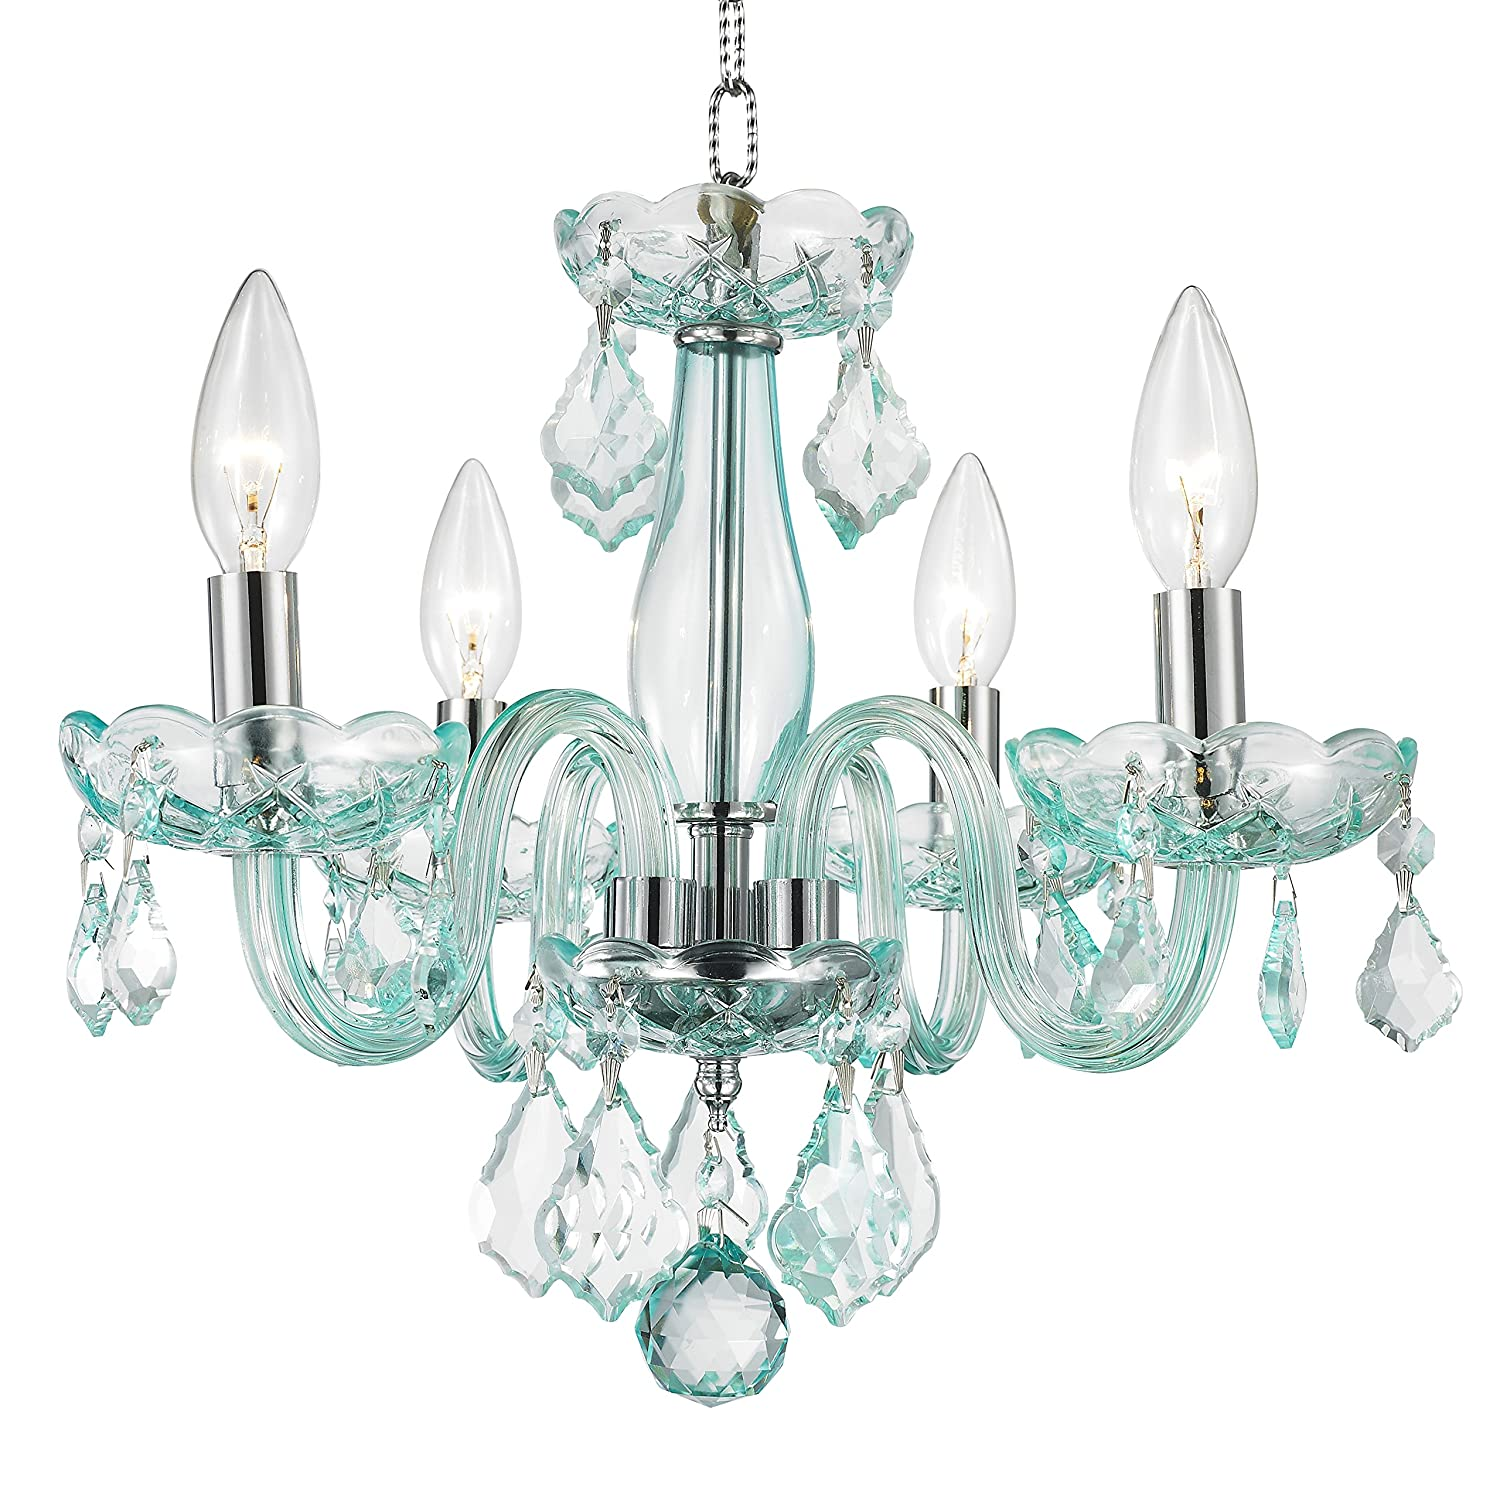 Com Worldwide Lighting W83100c16 Cb Clarion 4 Light Mini Crystal Chandelier 16 D X 12 H Chrome Finish And C Blue Turquoise Home Improvement